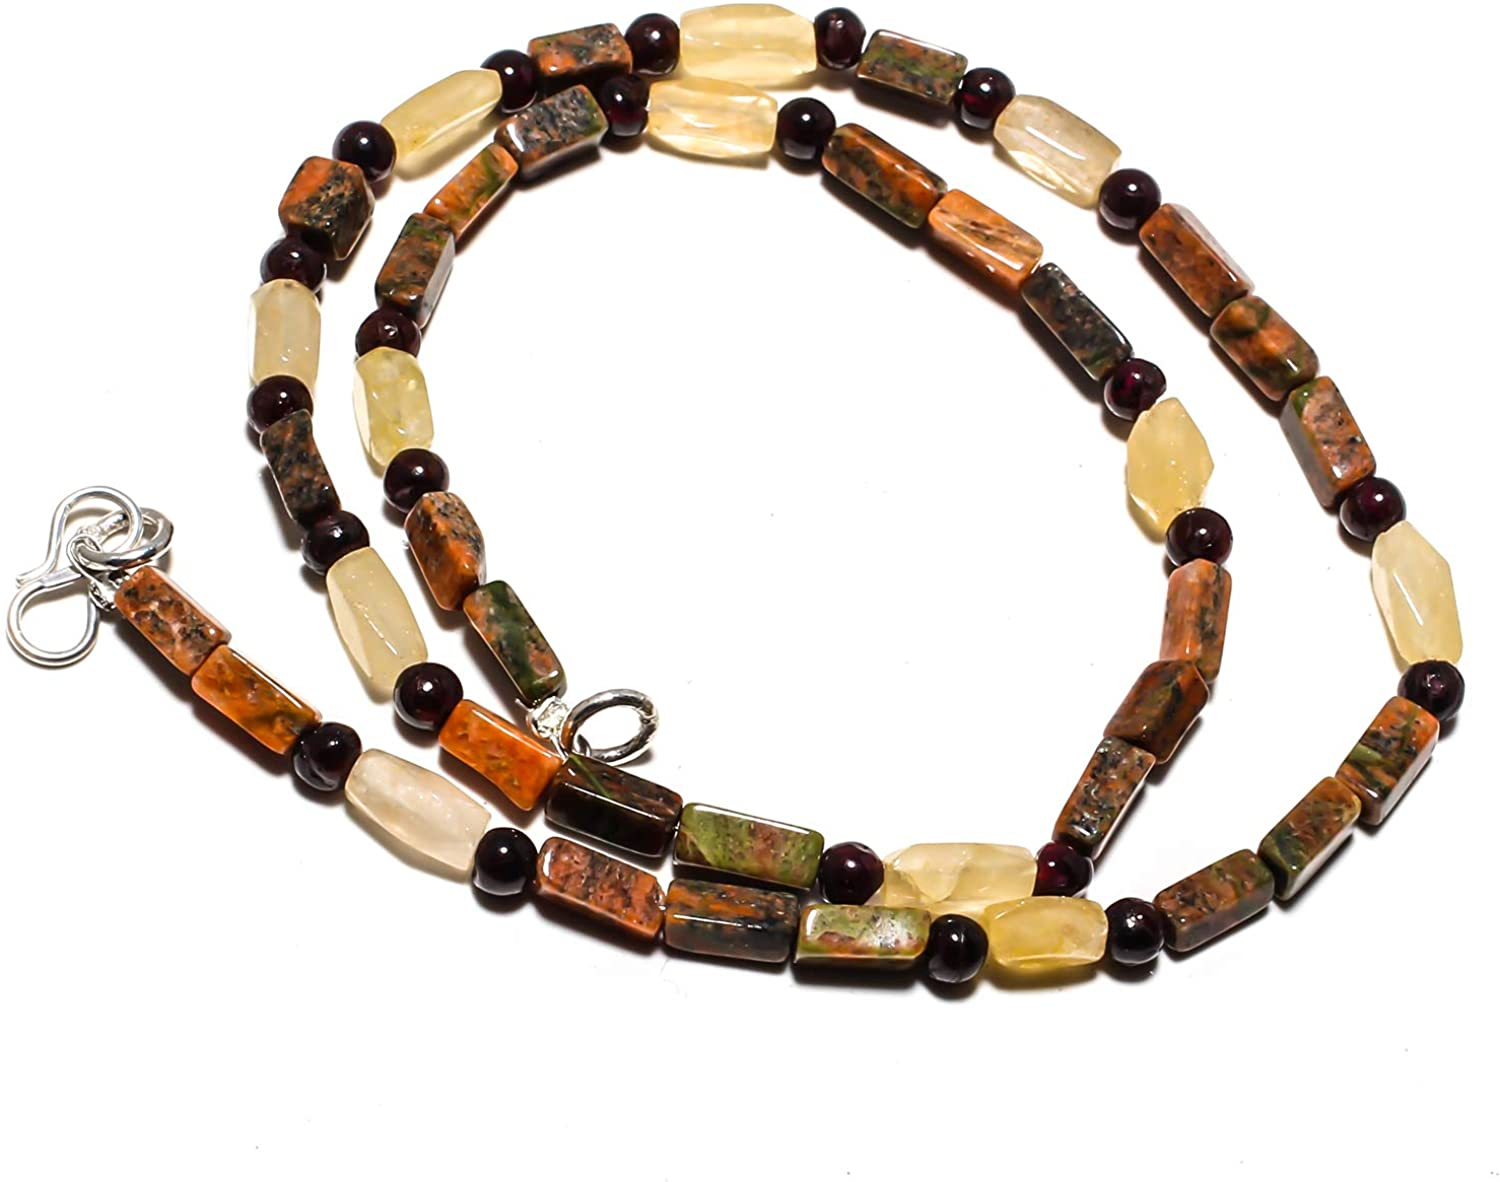 kanta incorporation Unakite Natural Gemstone Beads Jewelry Necklace 17